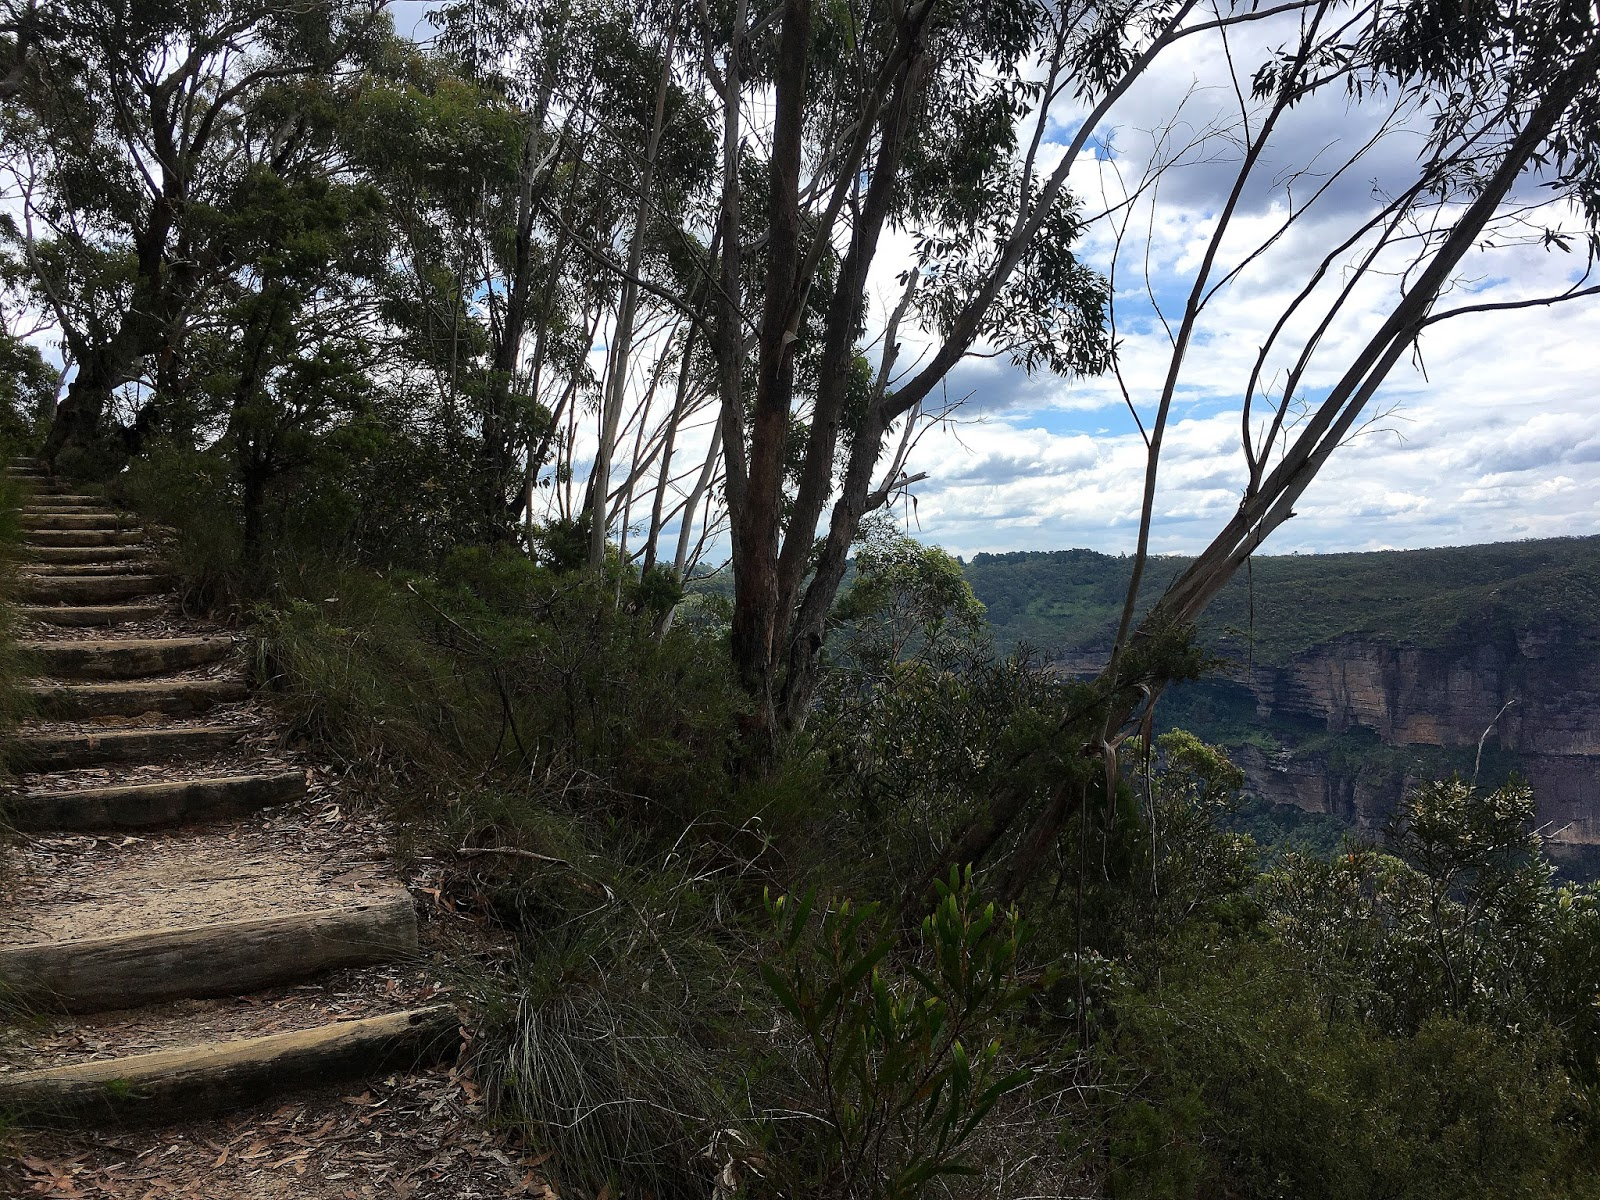 Hiking solo the Grand Canyon in Australia's Blue Mountains has been one of the greatest adventures. With breathtaking views and endless stairs, come and find out more!